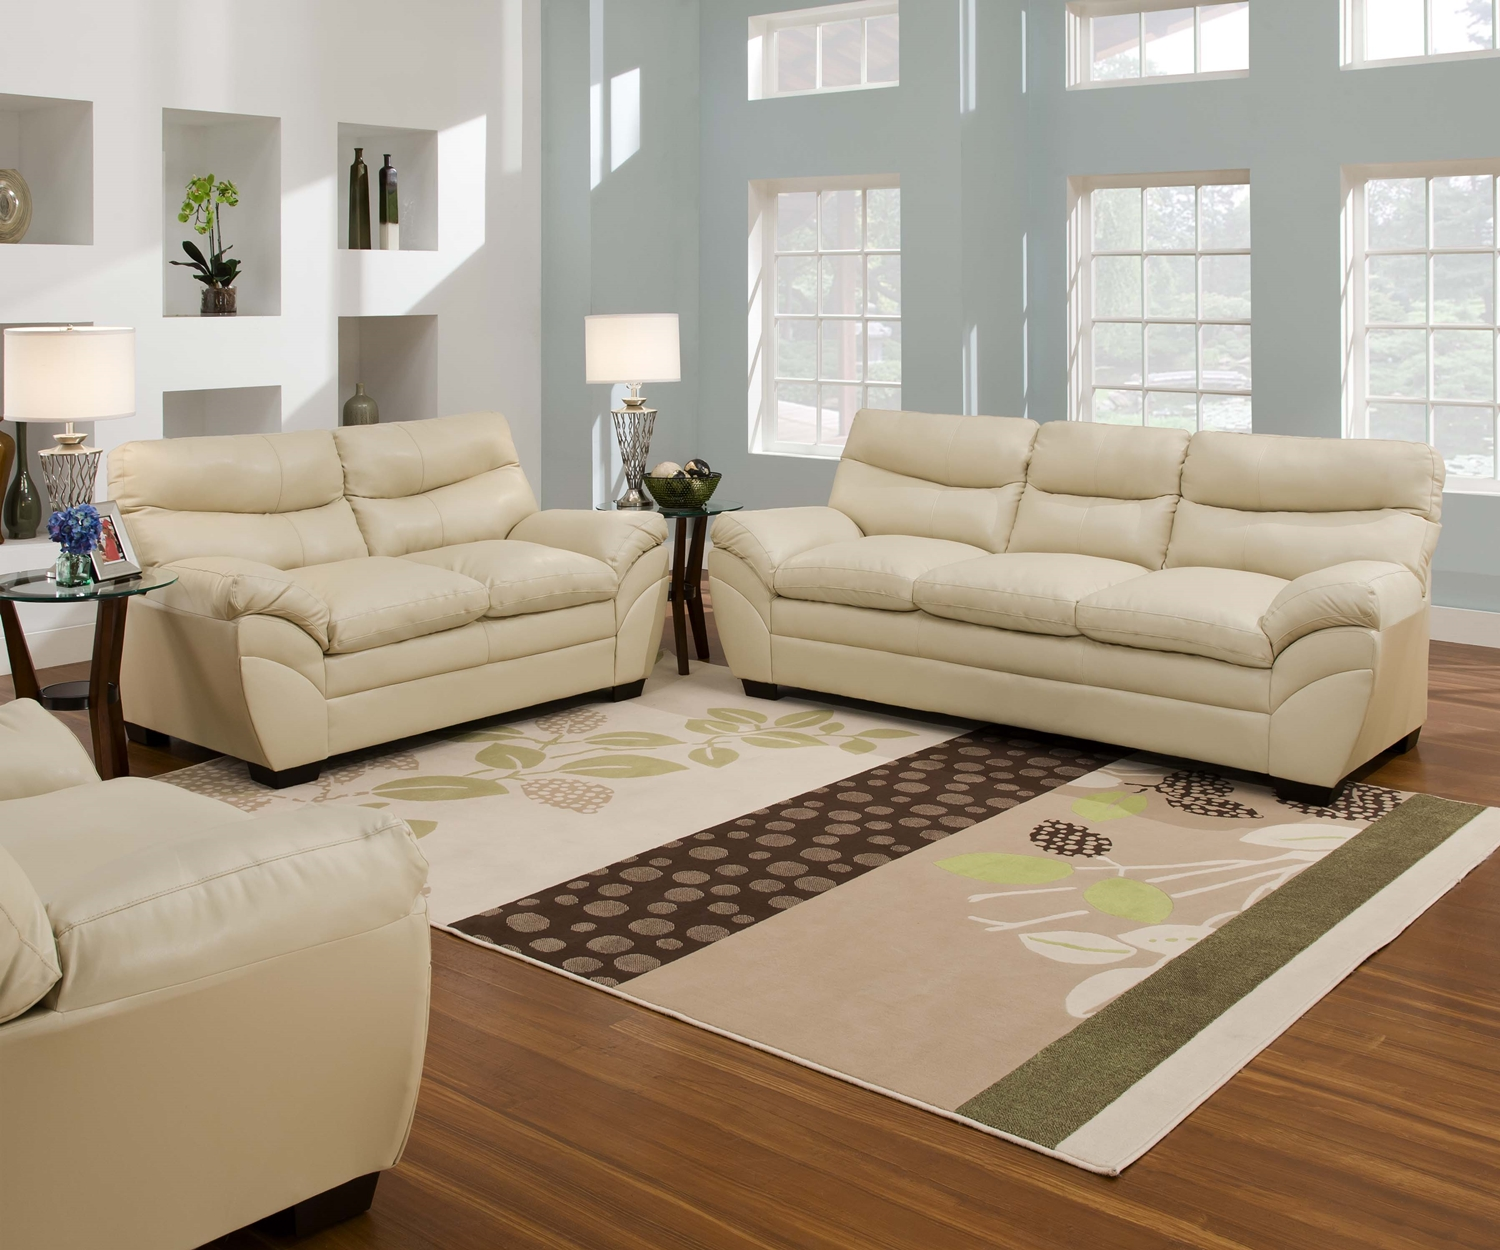 Cream living room furniture modern house for Living room dresser